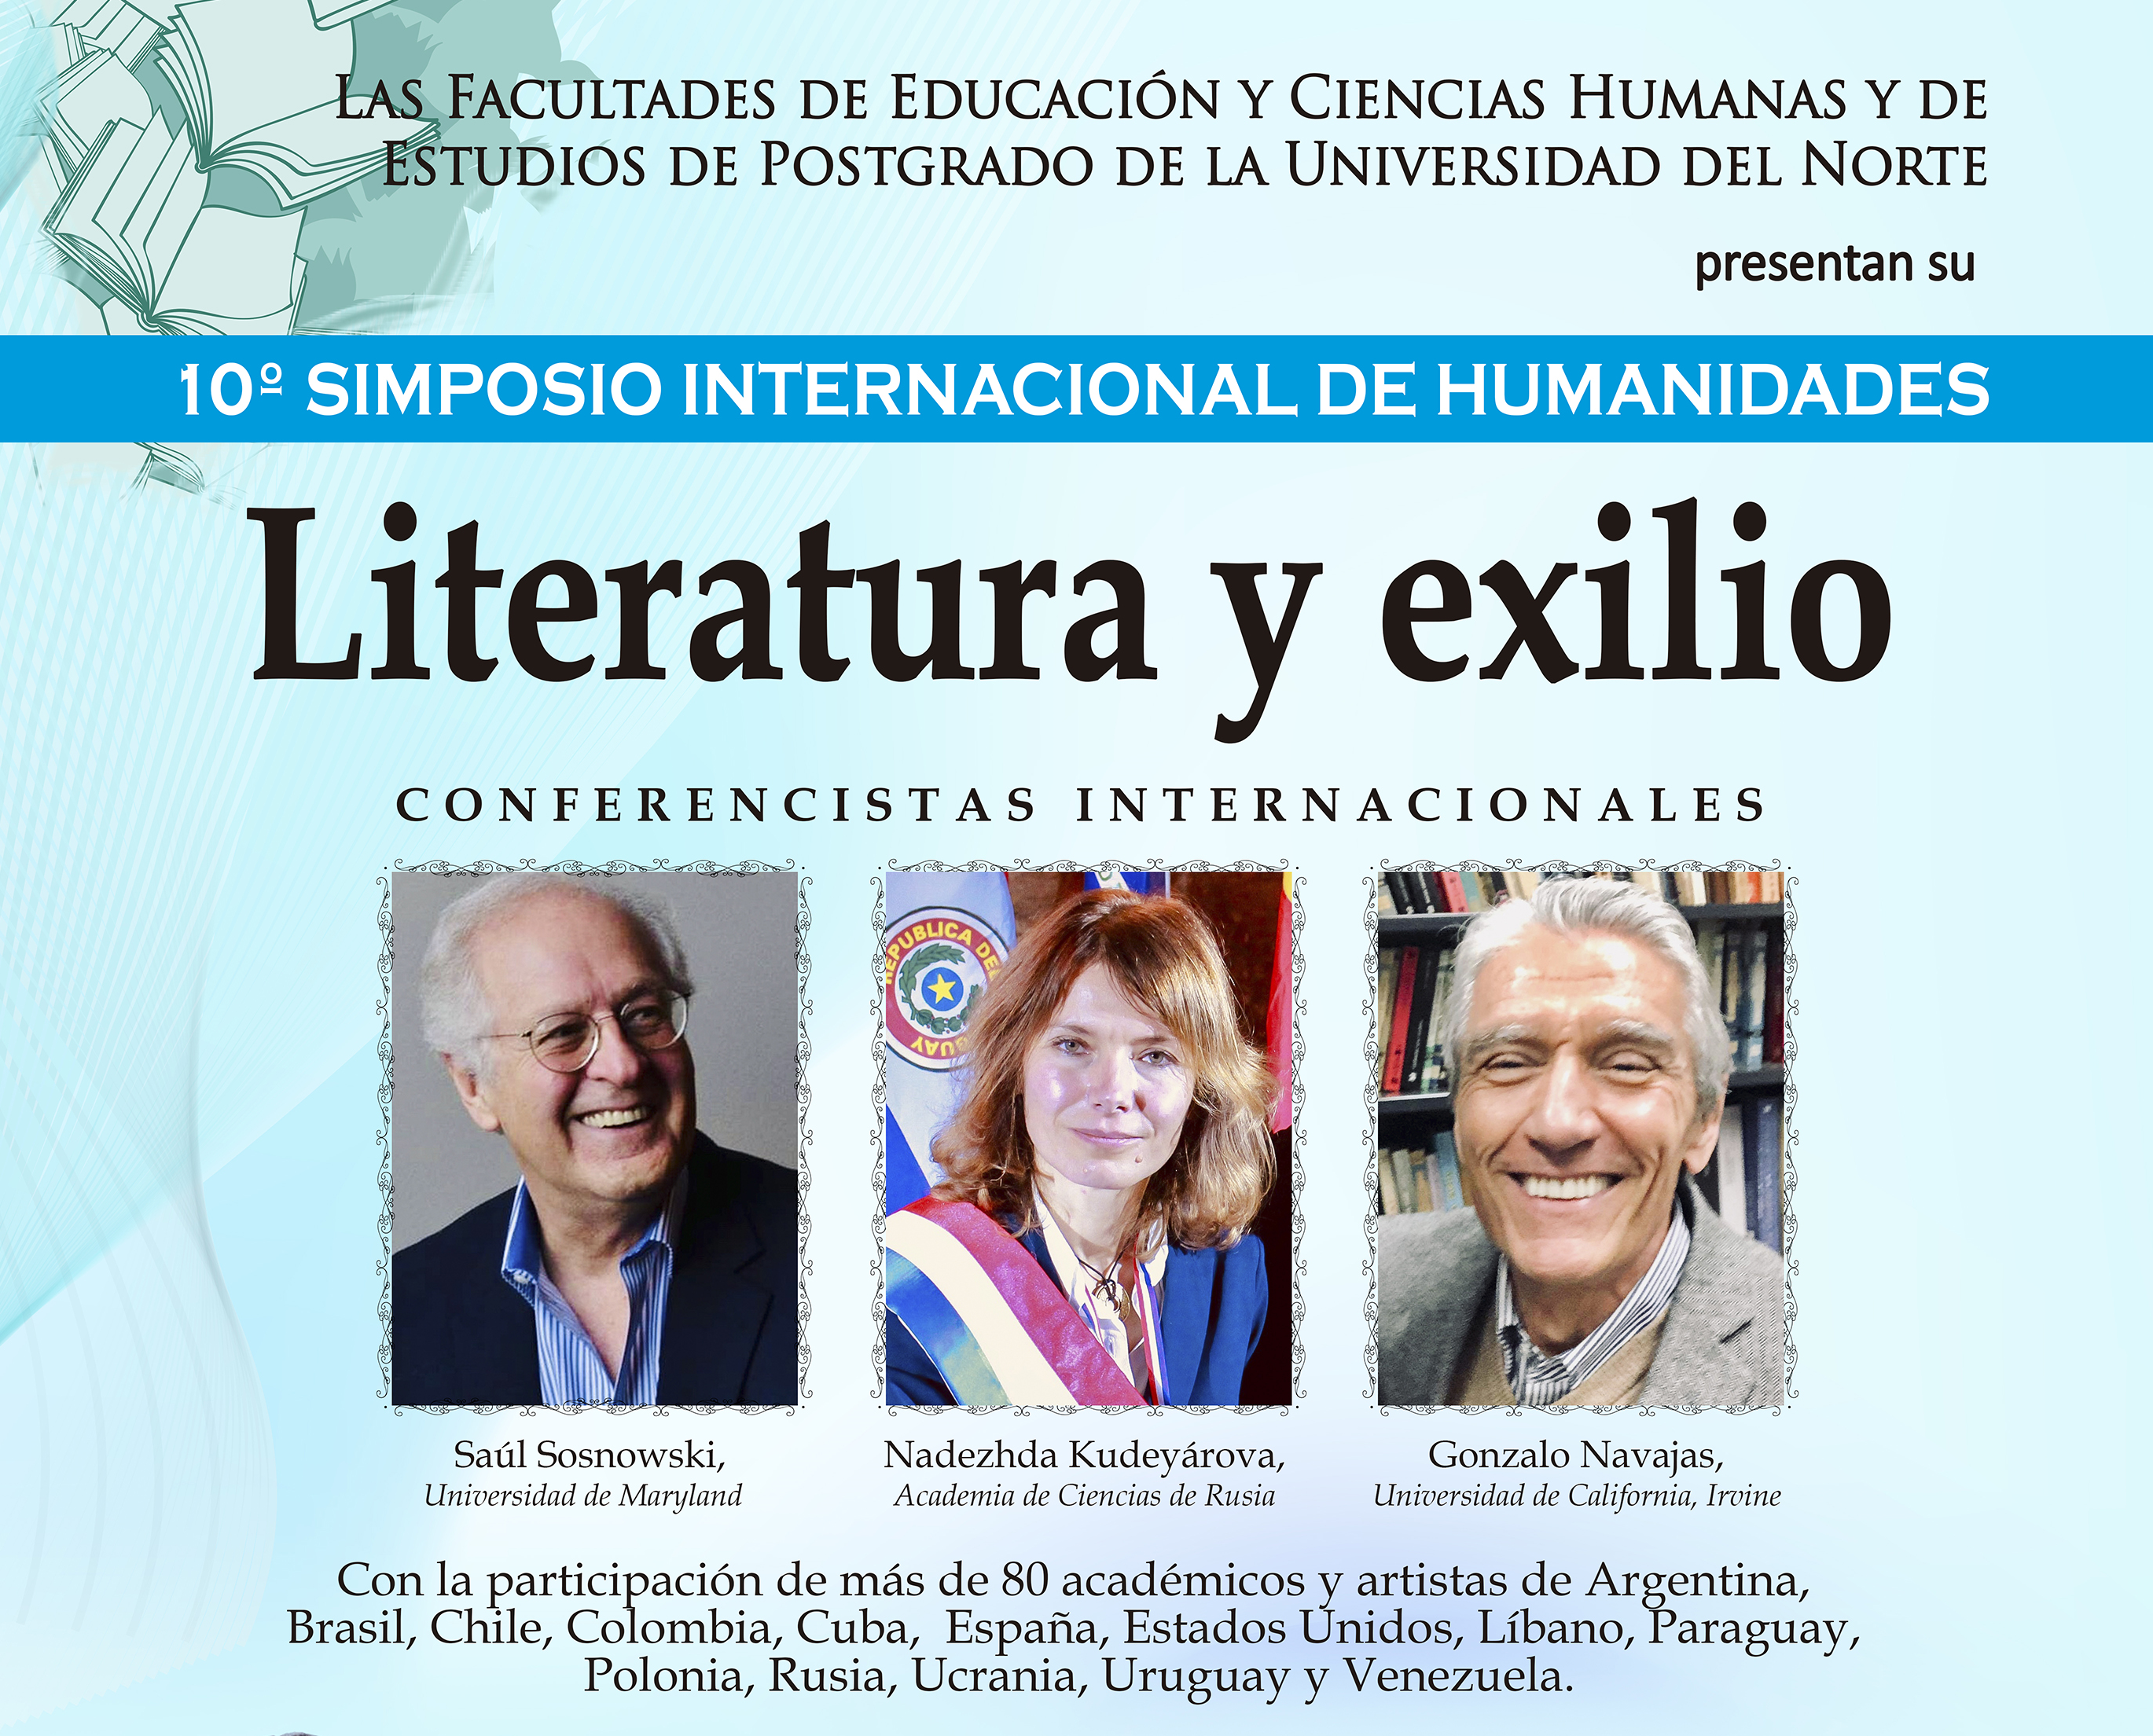 Importante Simposio de Humanidades de la Universidad del Norte sigue con sus conferencias magistrales